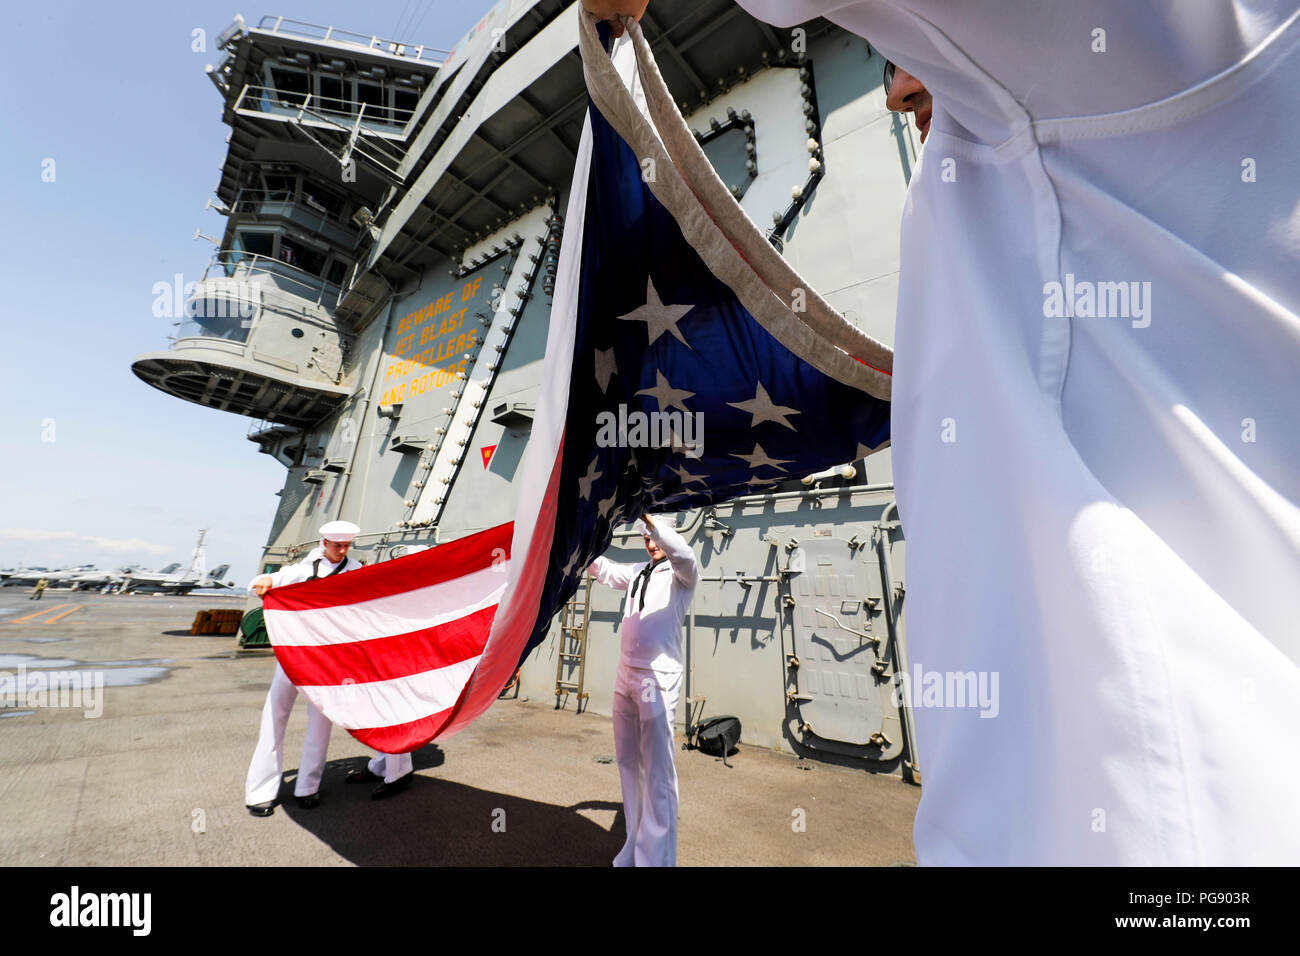 180819-N-FB291-1086 ATLANTIC OCEAN (Aug. 19, 2018) Sailors aboard the Nimitz-class aircraft carrier USS Abraham Lincoln (CVN 72) ceremoniously fold the national ensign. (U.S. Navy photo by Mass Communication Specialist 3rd Class Garrett LaBarge/Released) - Stock Image